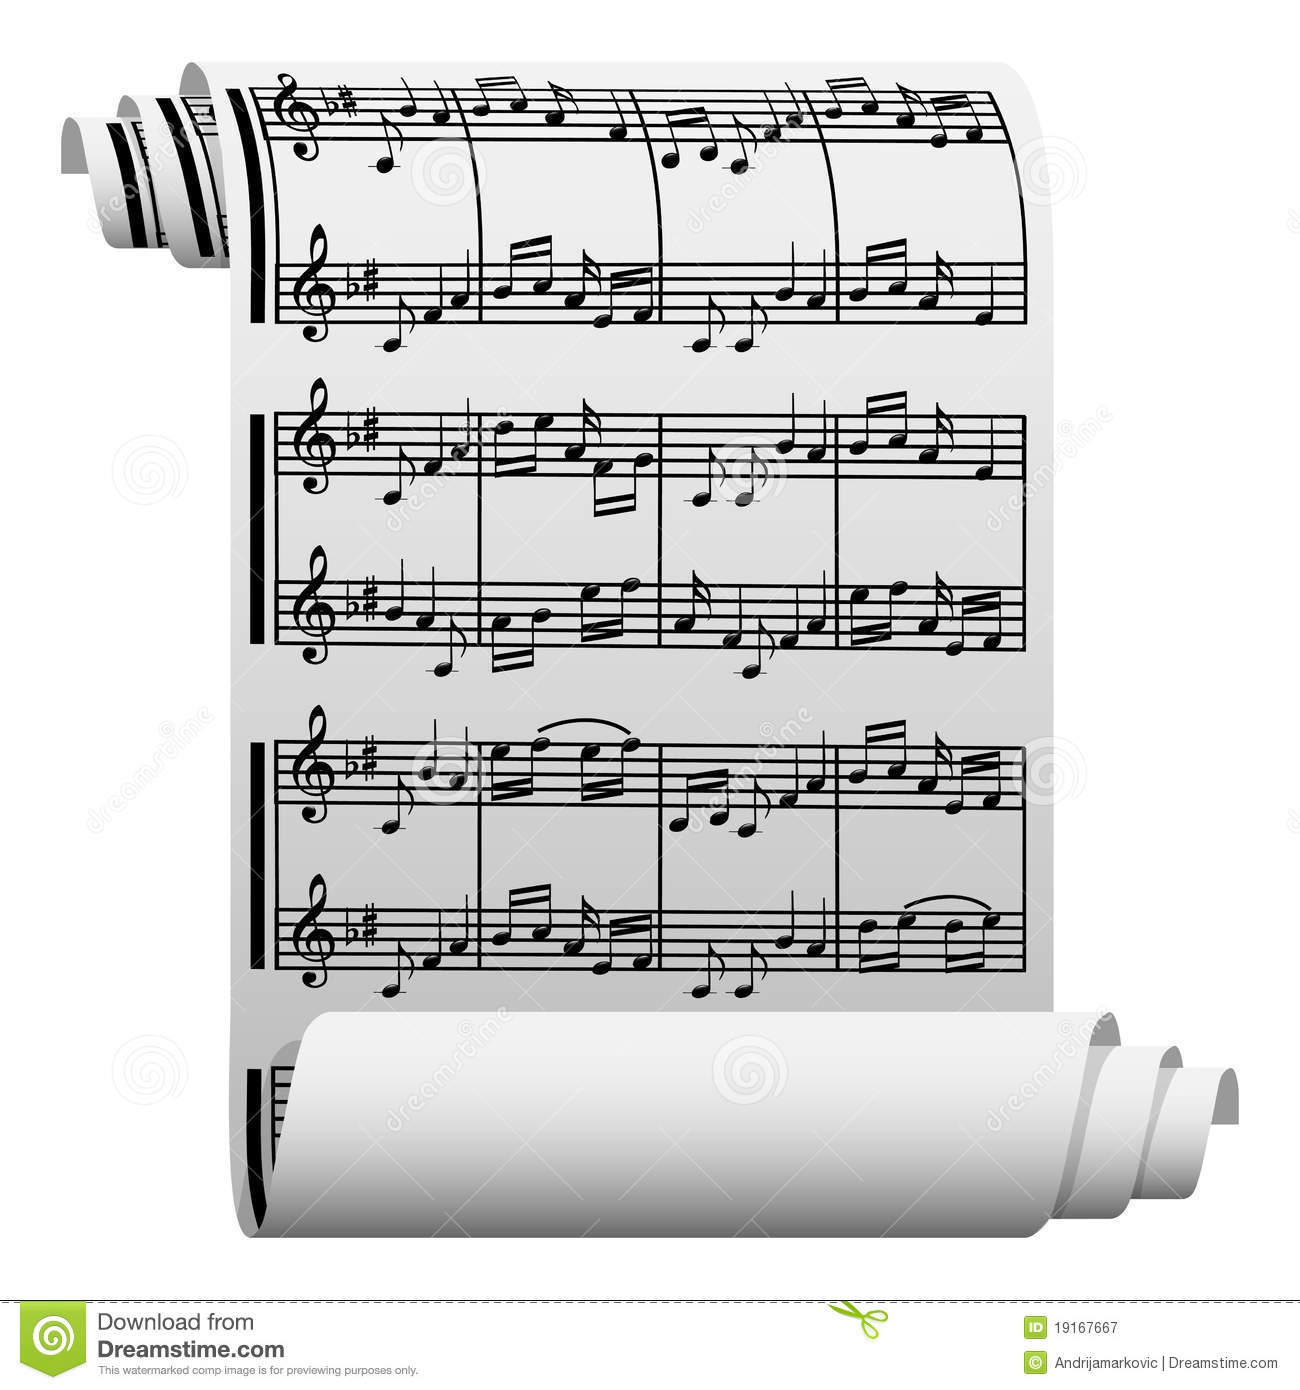 written music paper vector manuscript illustration sheet preview scroll vectorstock similar dreamstime